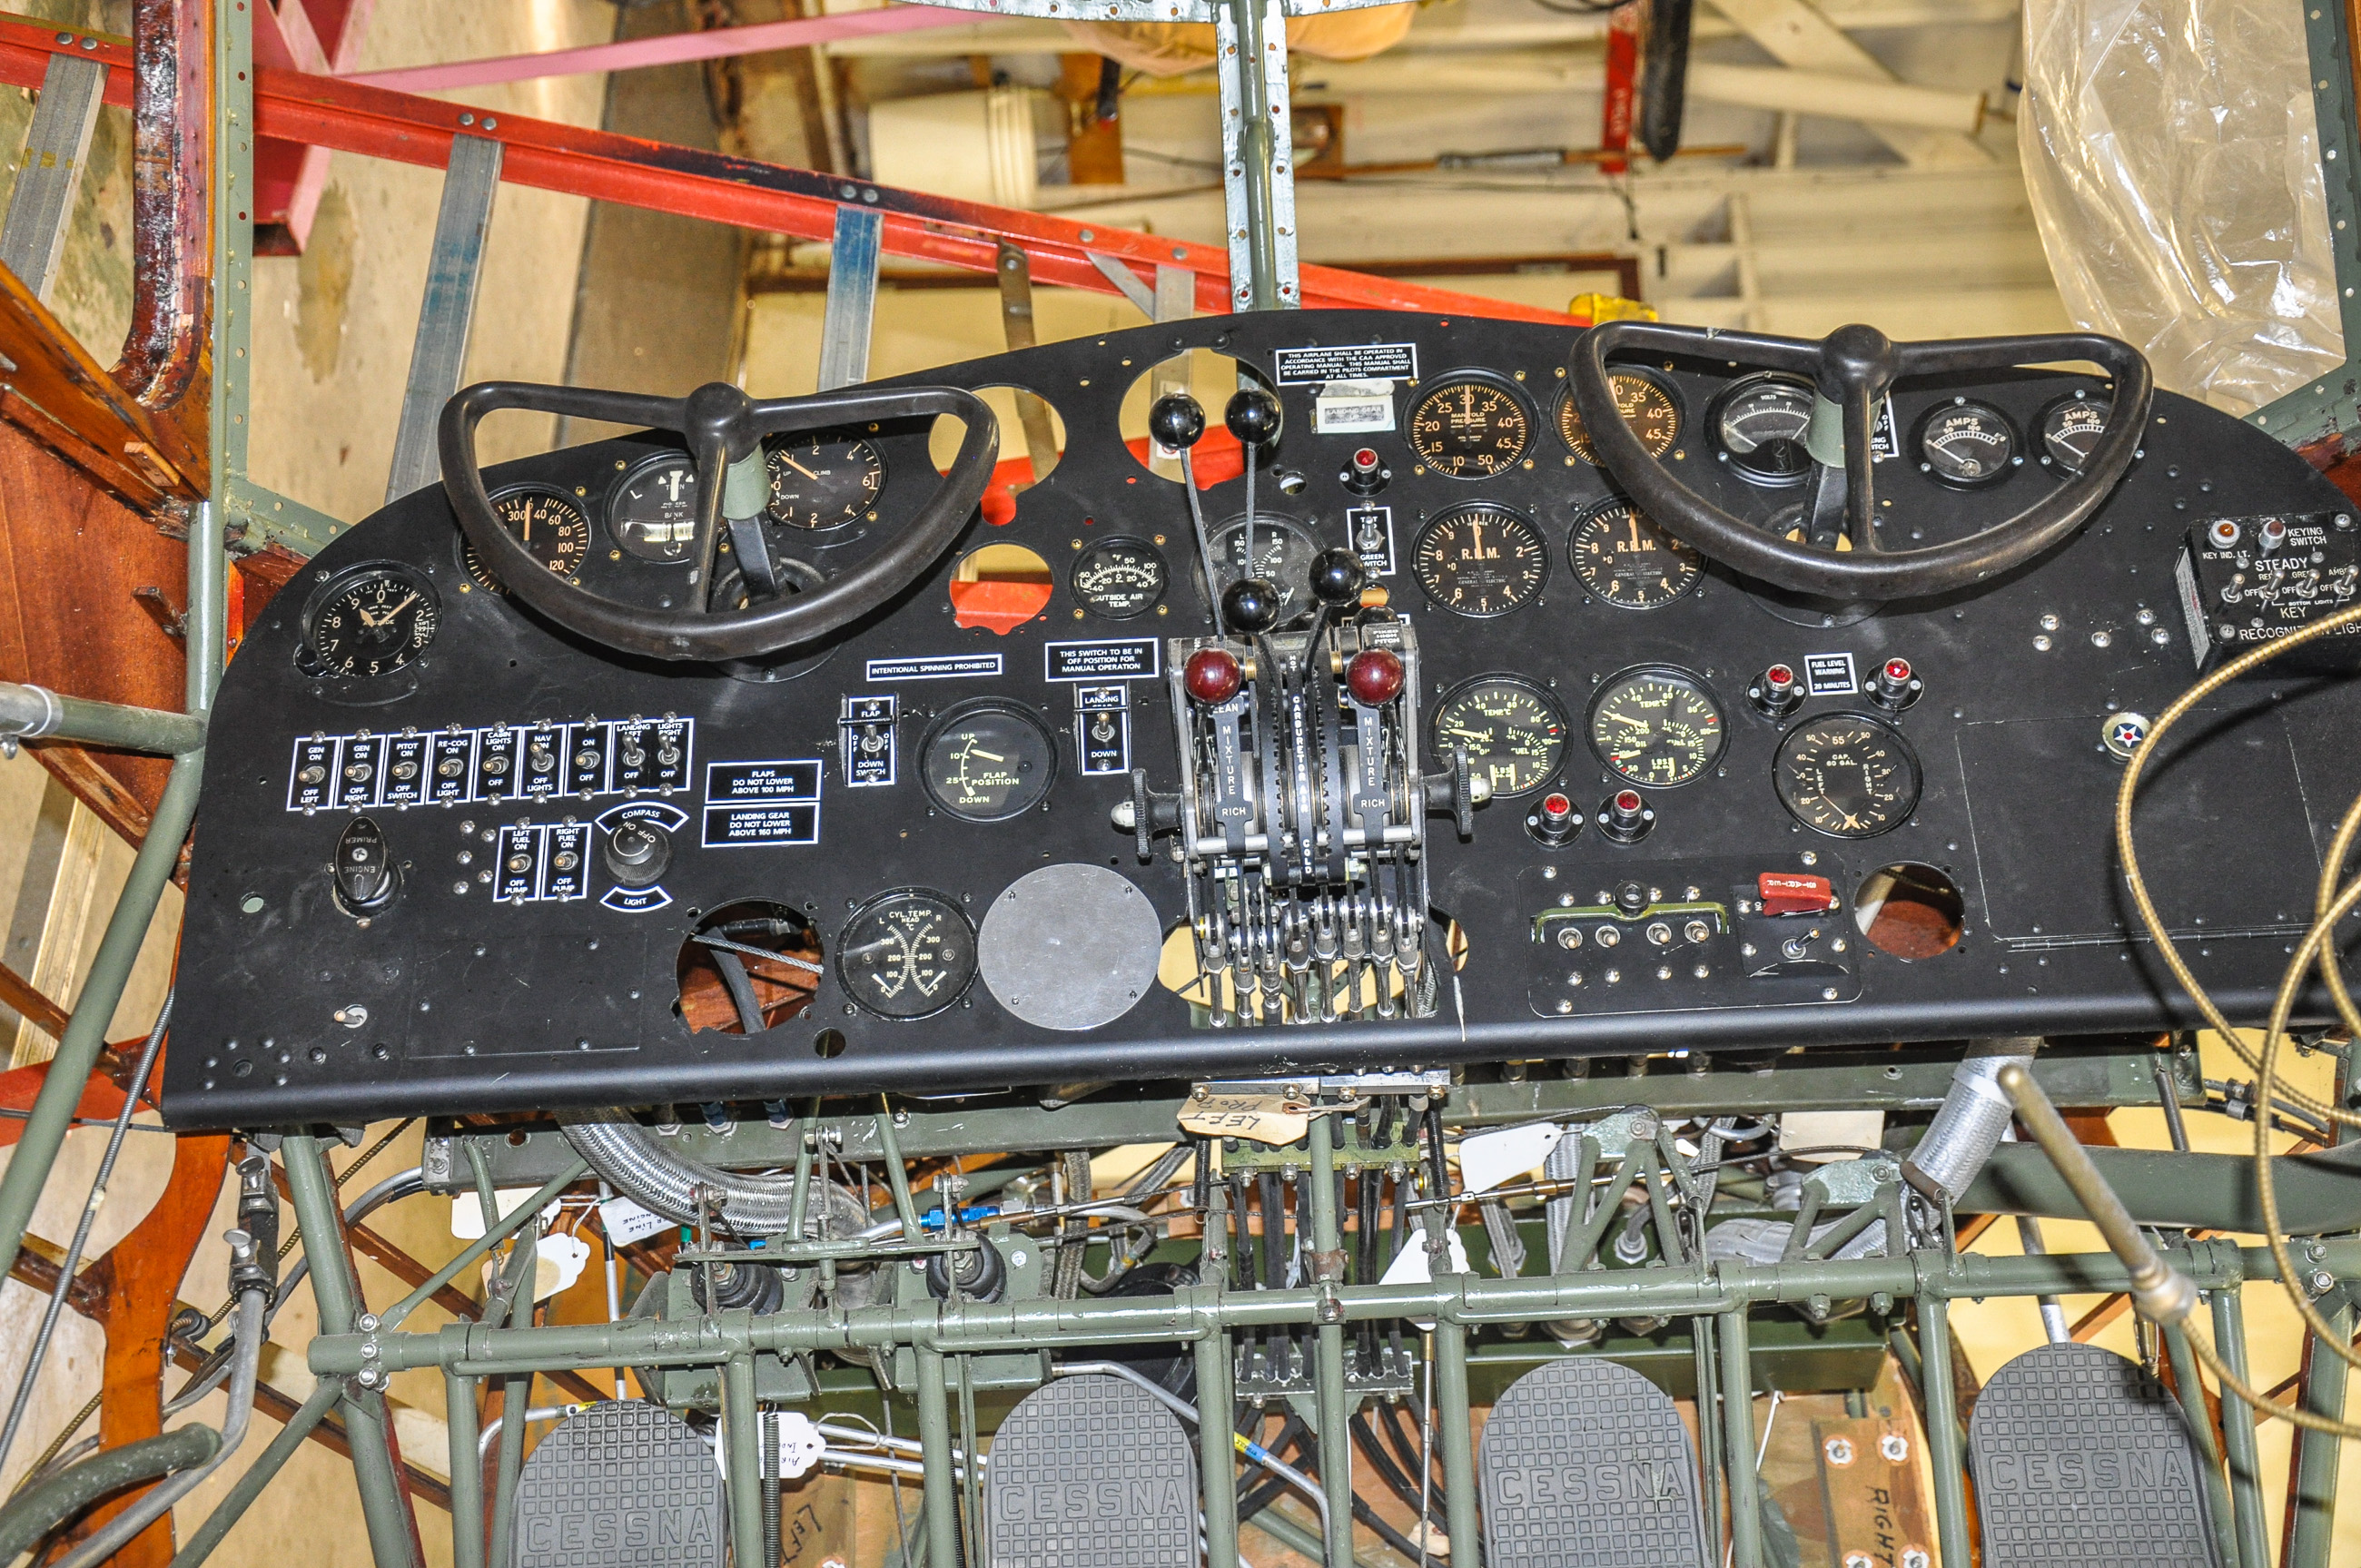 Detail of the instrument panel. (photo by David Cohen)